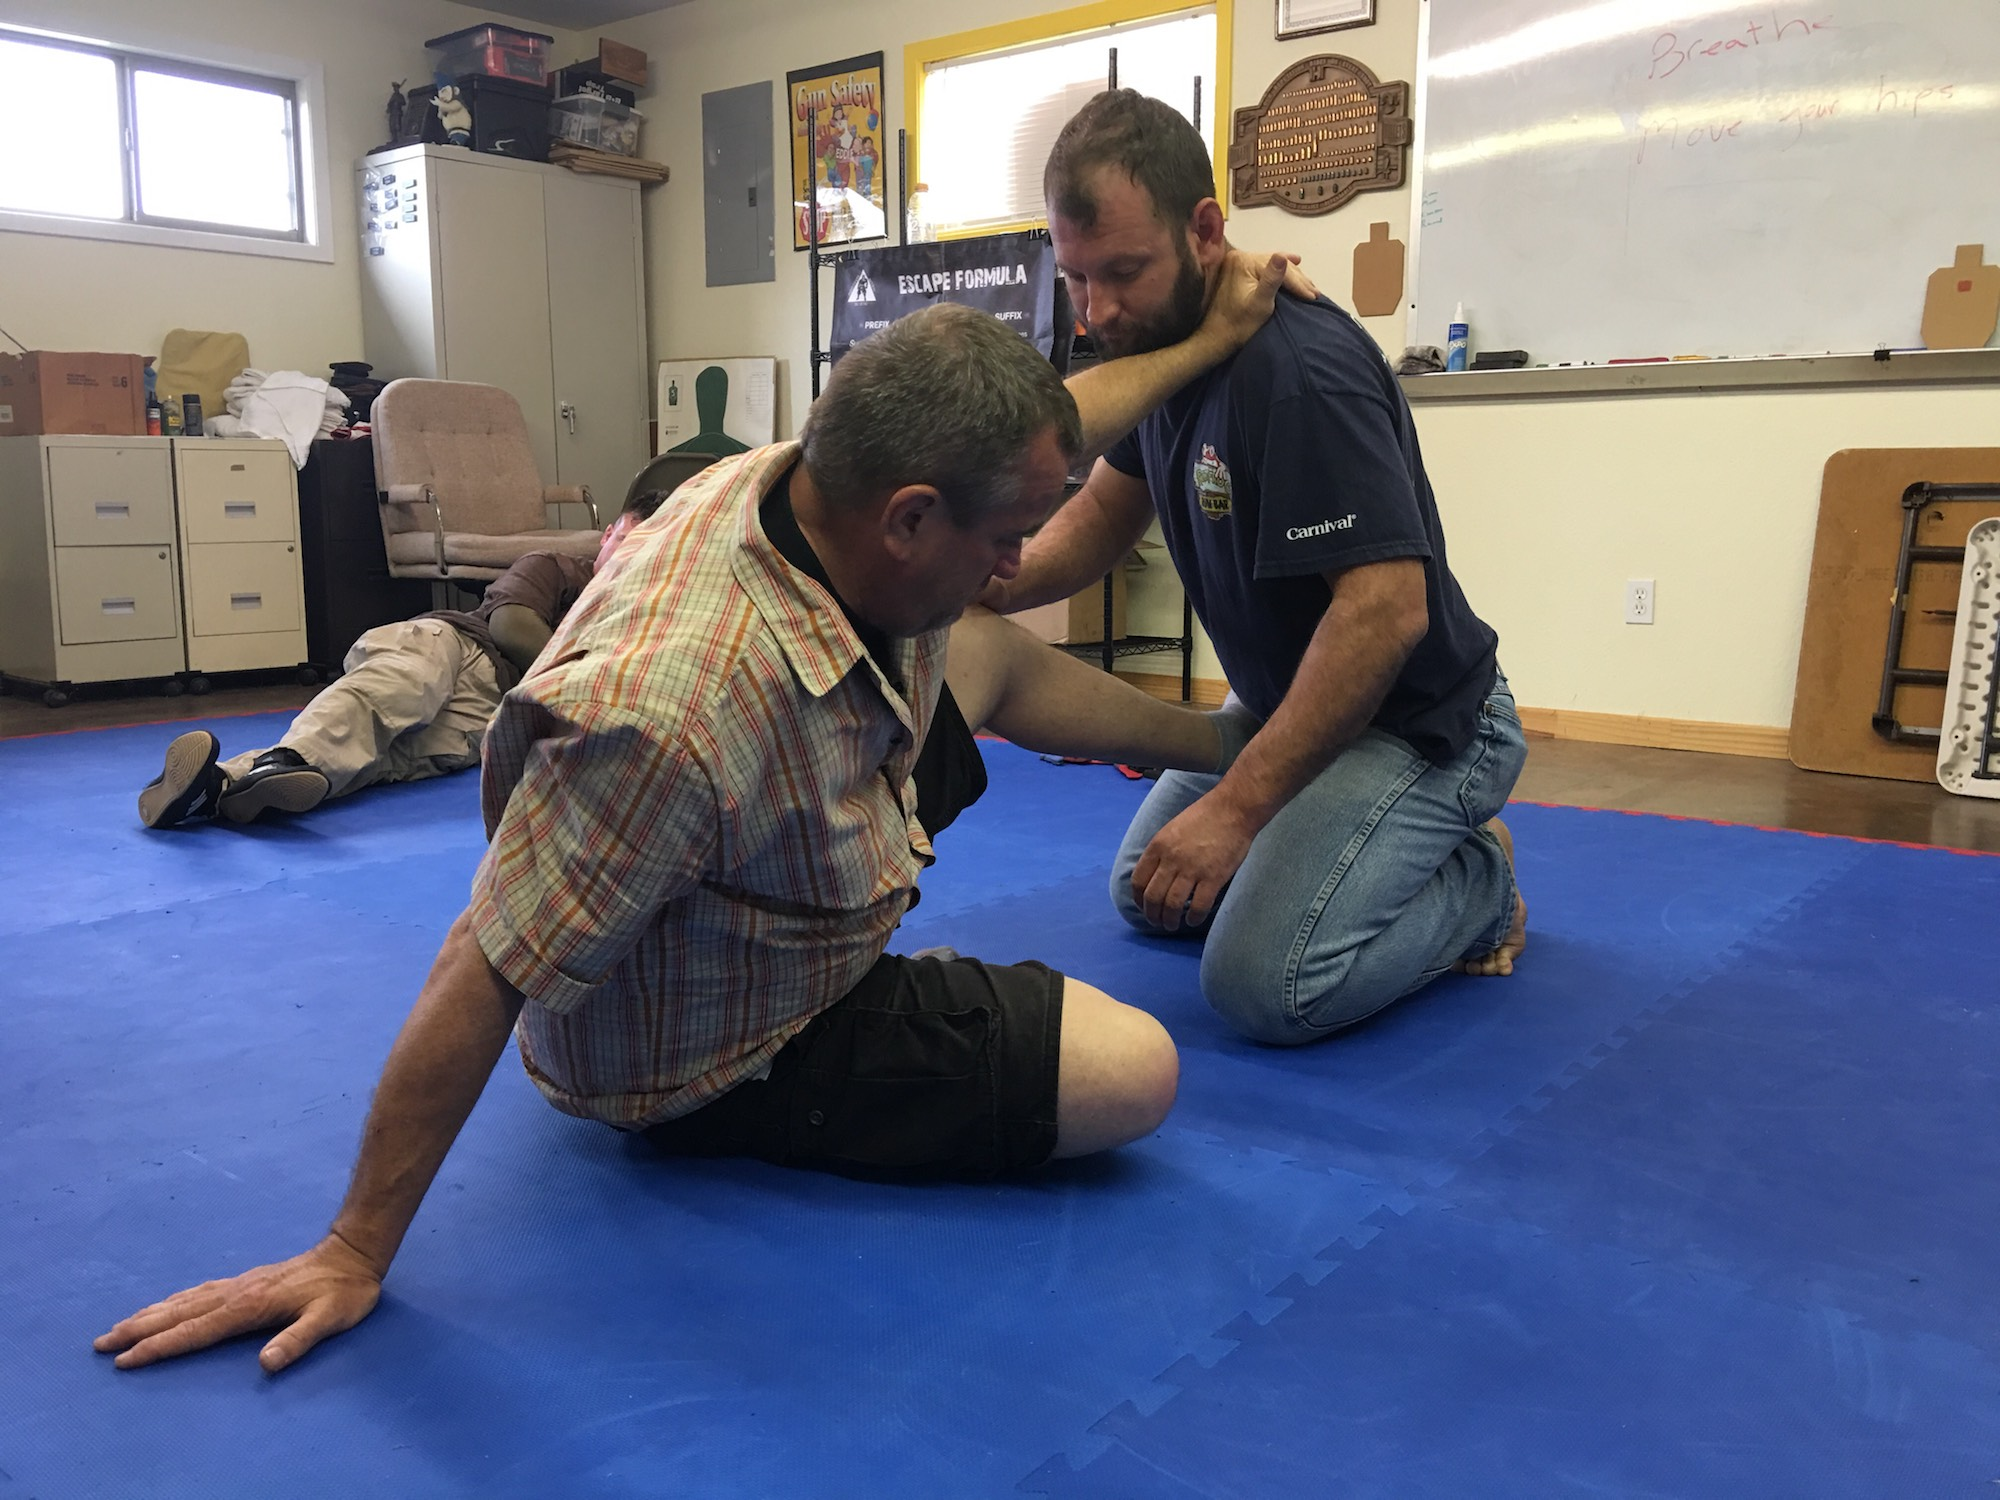 Cecil Burch (left) at KR Training, demonstrating a technique for standing up.